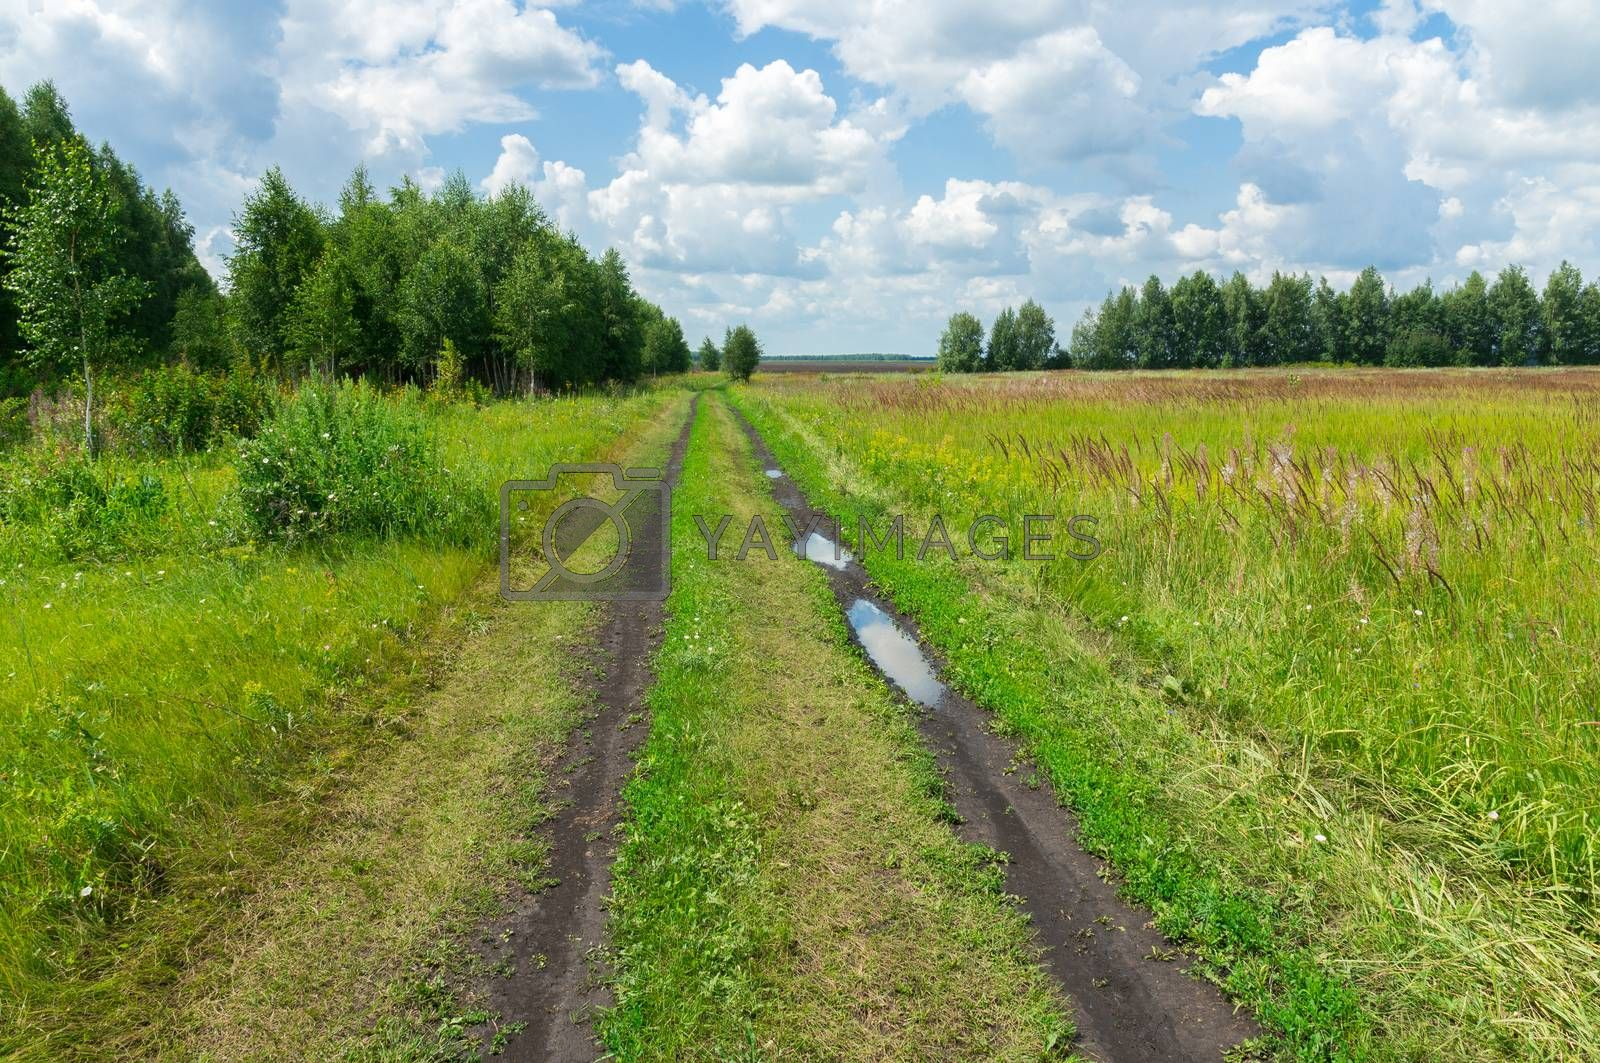 The photo shows a road in a field